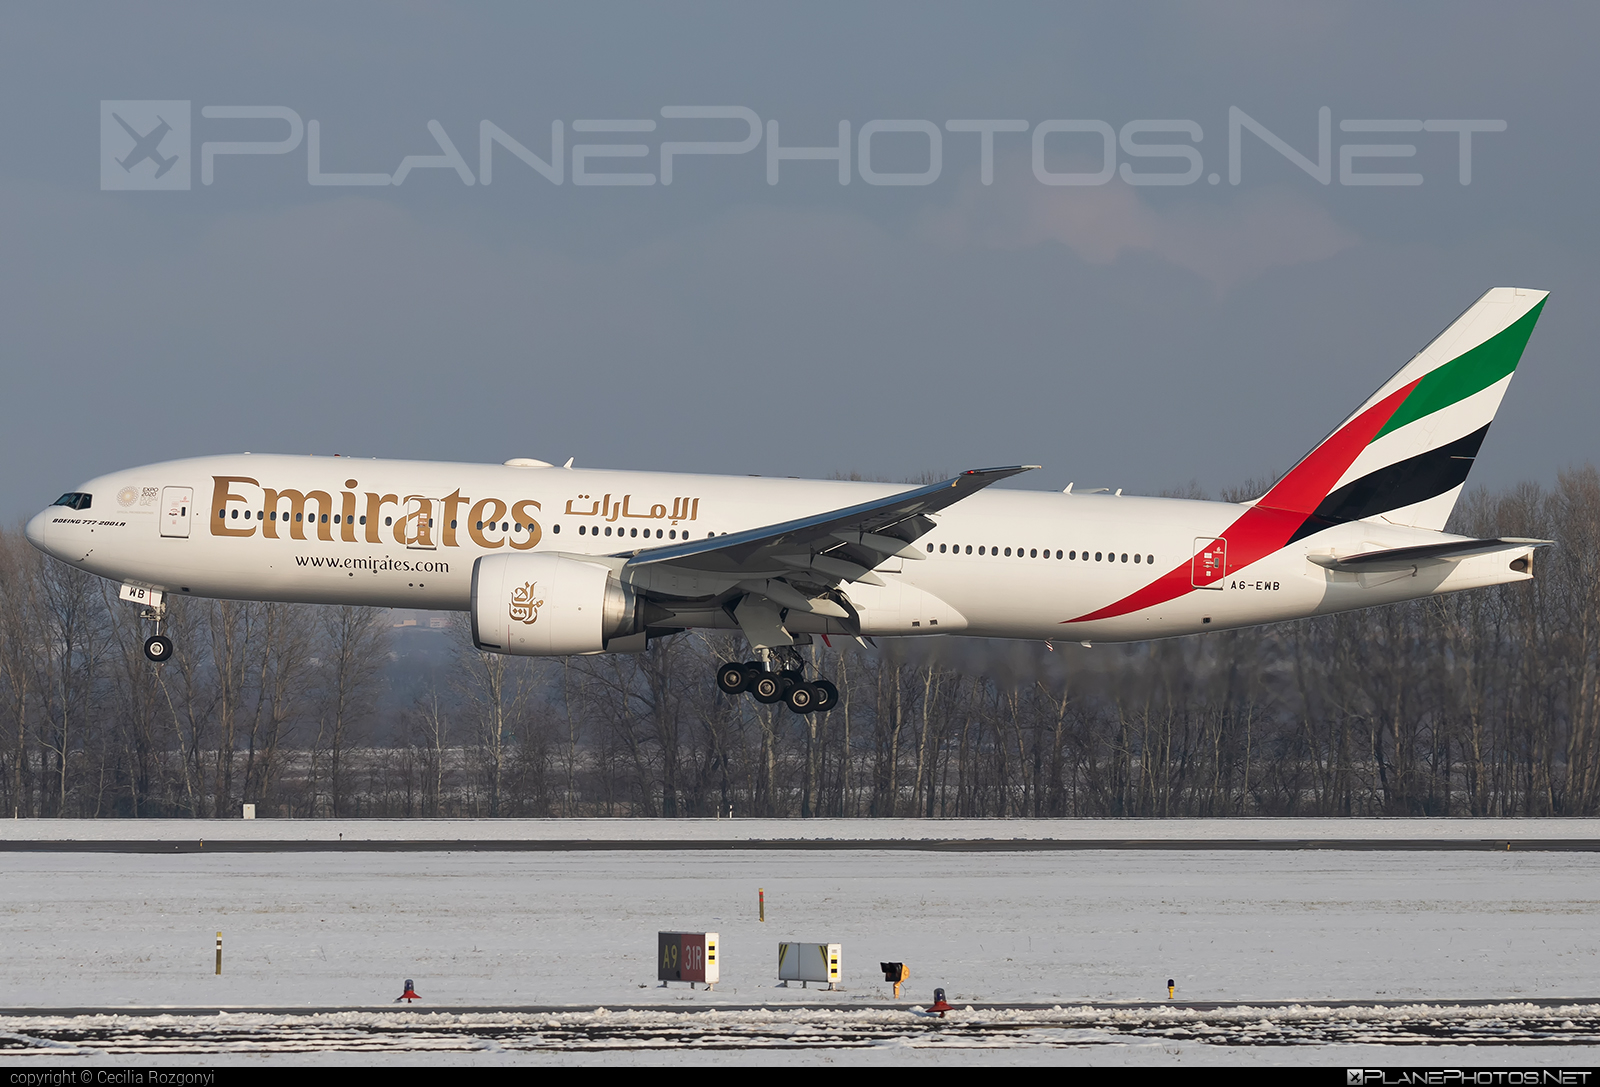 Boeing 777-200LR - A6-EWB operated by Emirates #b777 #b777lr #boeing #boeing777 #emirates #tripleseven